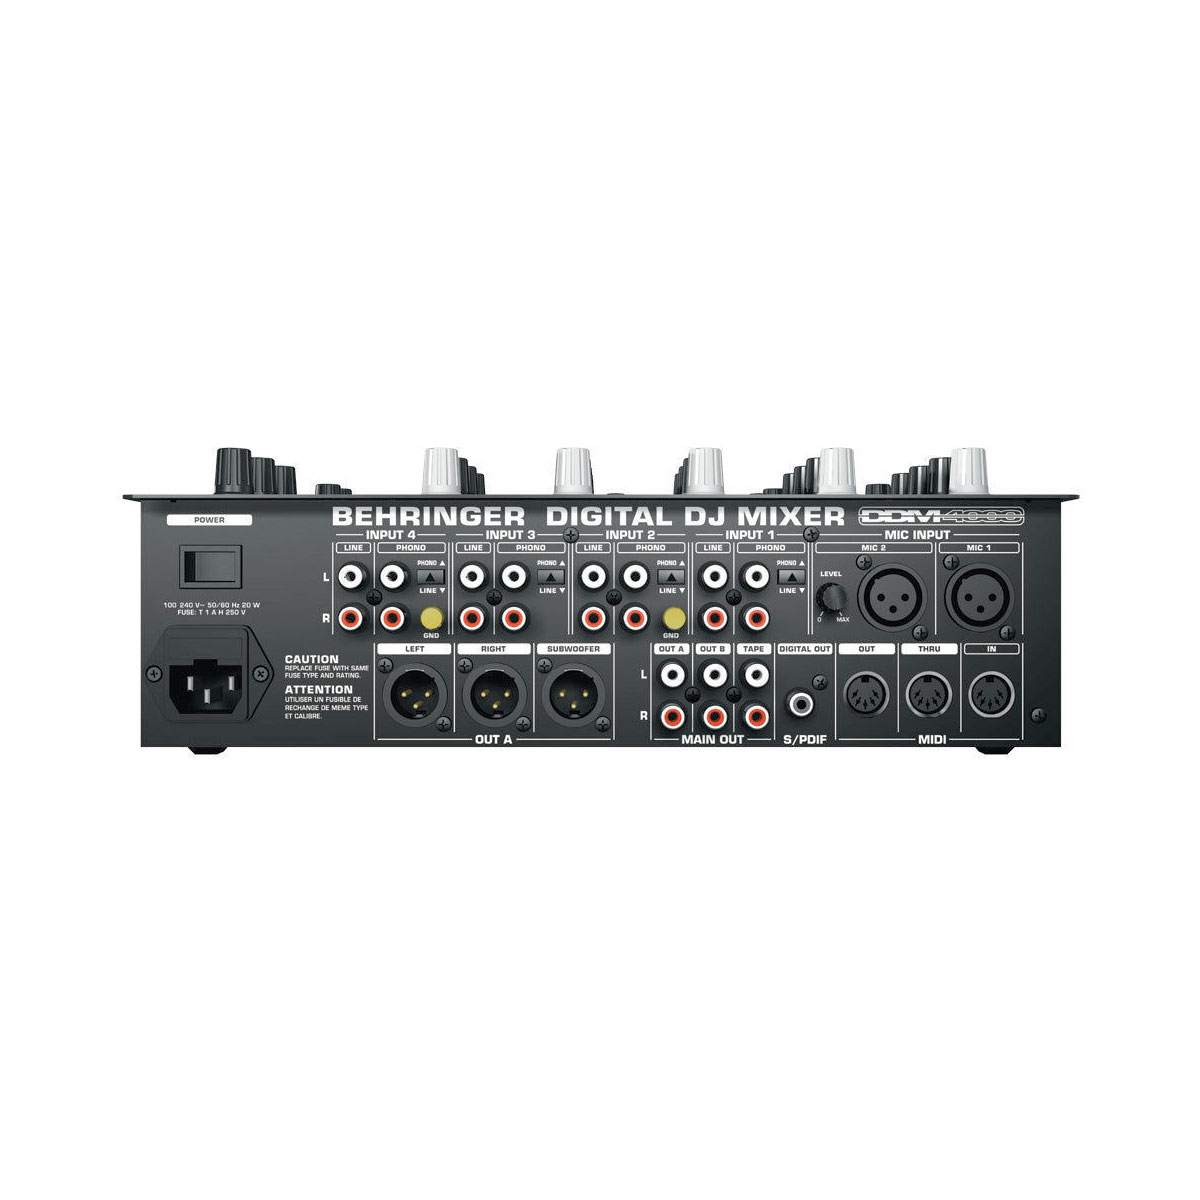 Ddm4000 4 Channel Digital Dj Mixer Equipment Music Trends Fuse Box Processor Behringer